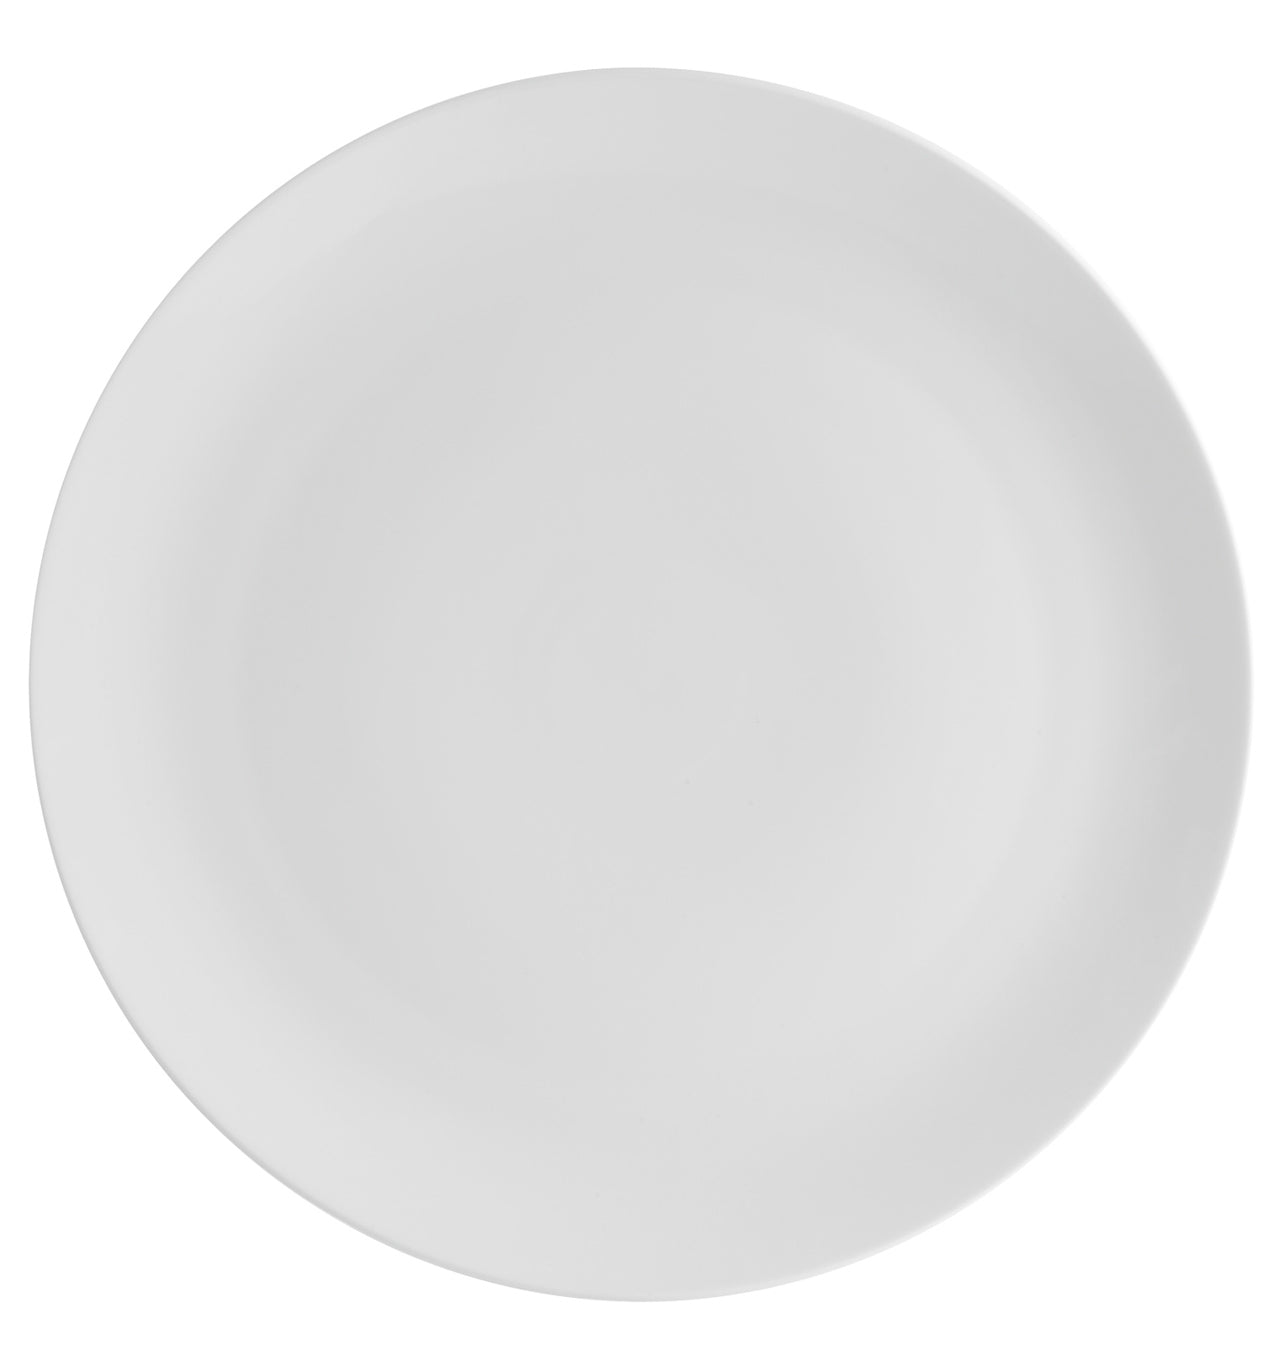 Broadway White Soup Plate Set of 4